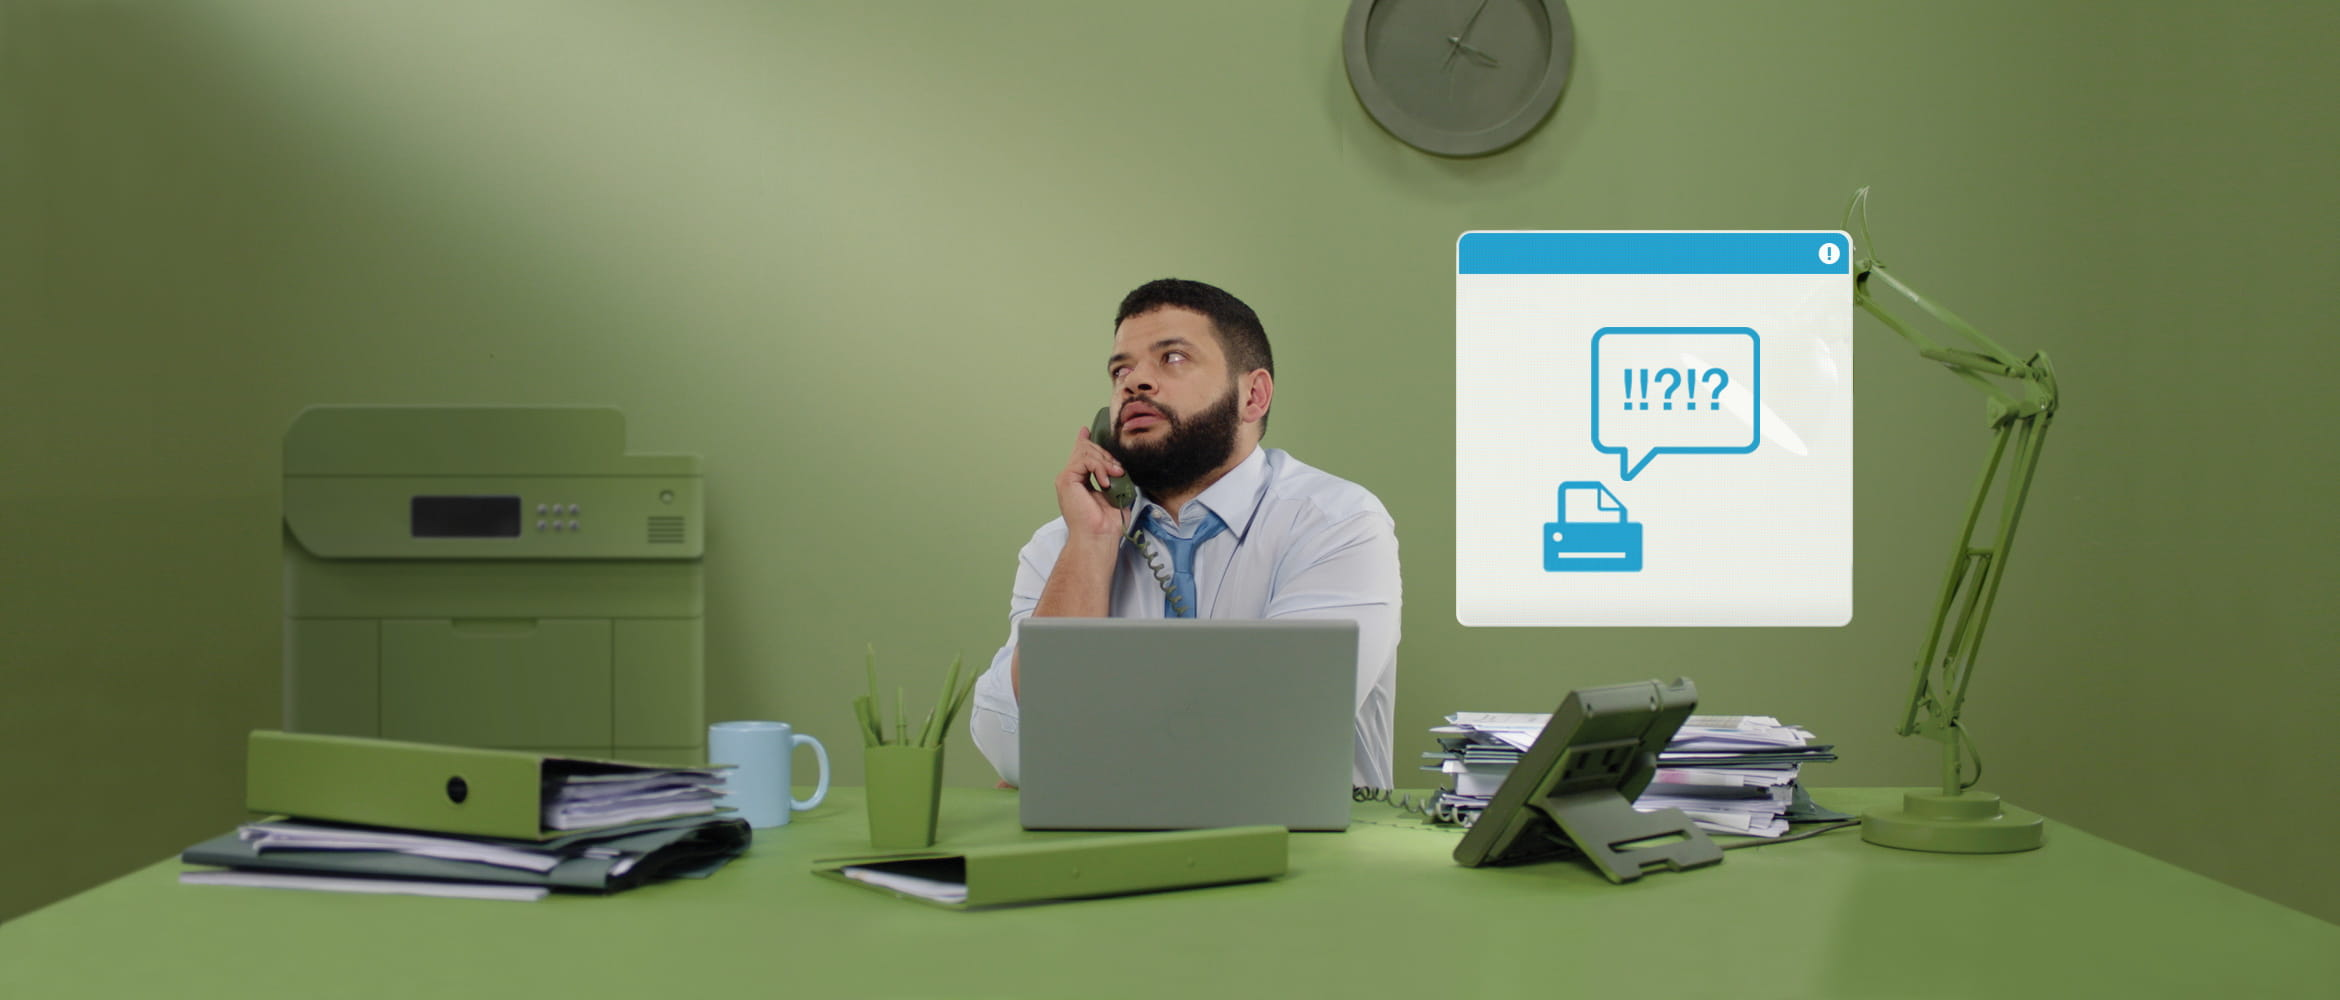 Man in office sat at desk on the phone